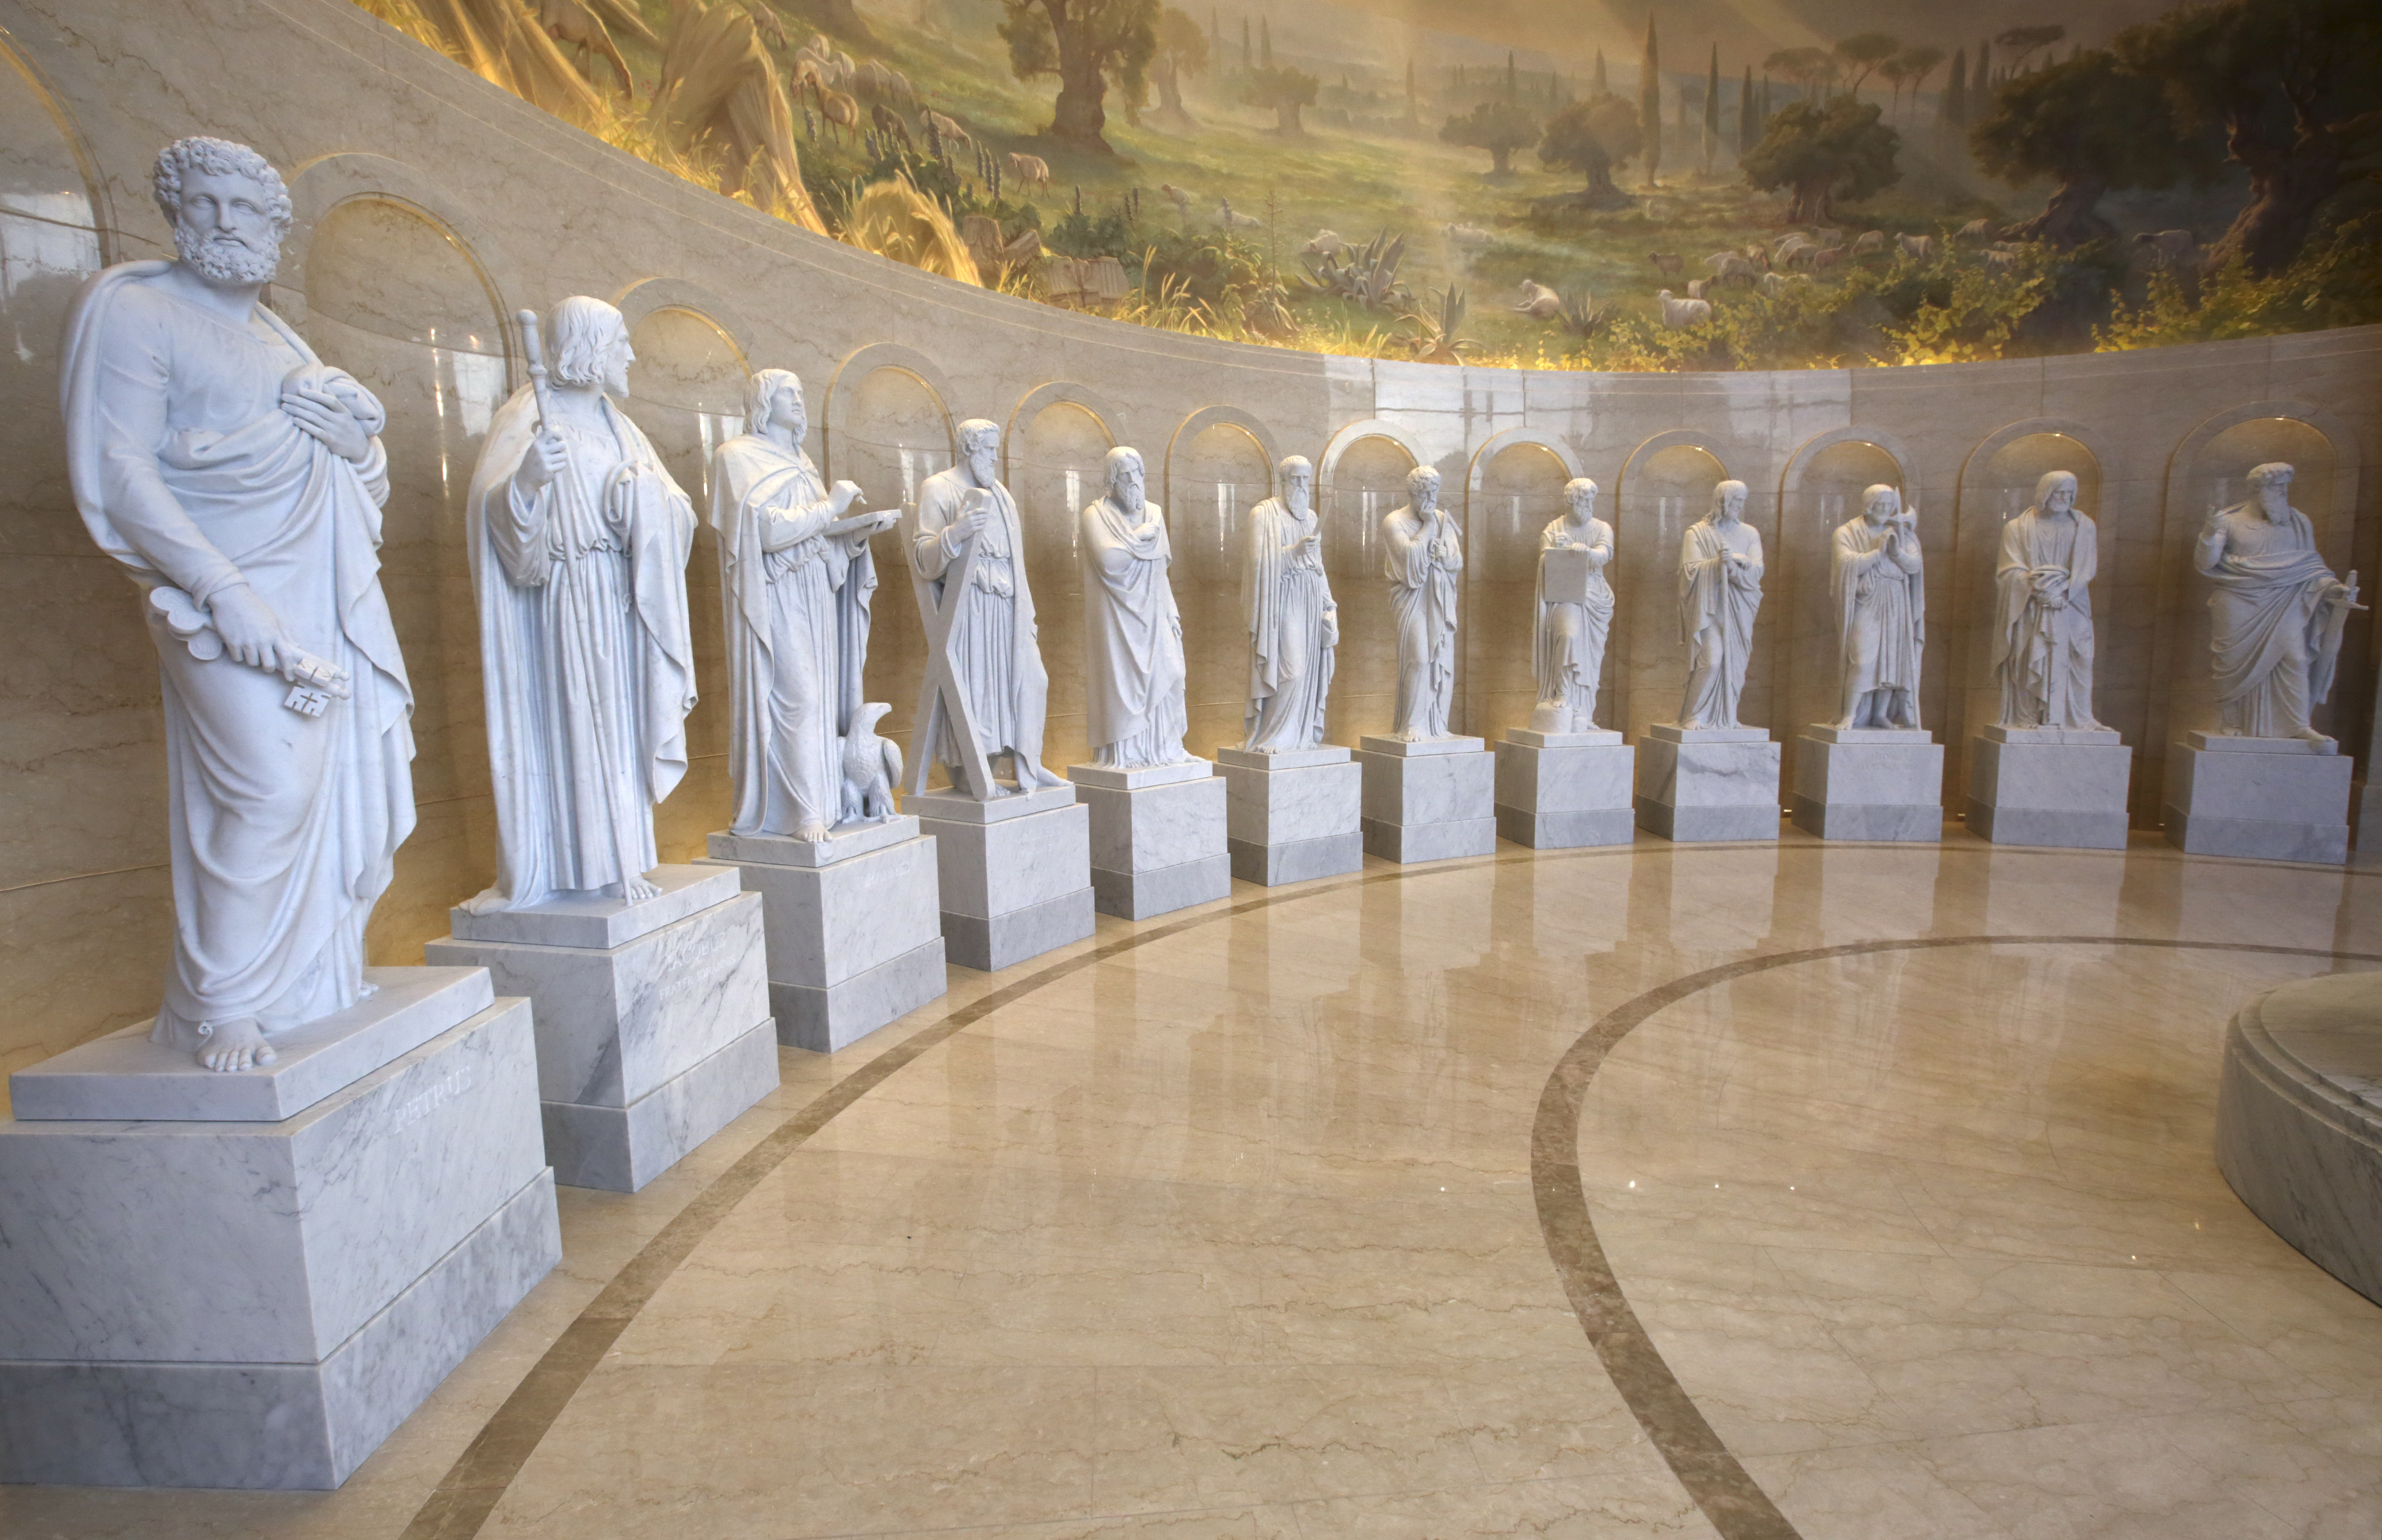 Replicas of Danish sculptor Bertel Thorvaldsen's 12 apostle statues are on display in the Rome Temple Visitors' Center in Rome, Italy, on Friday, Nov. 16, 2018.